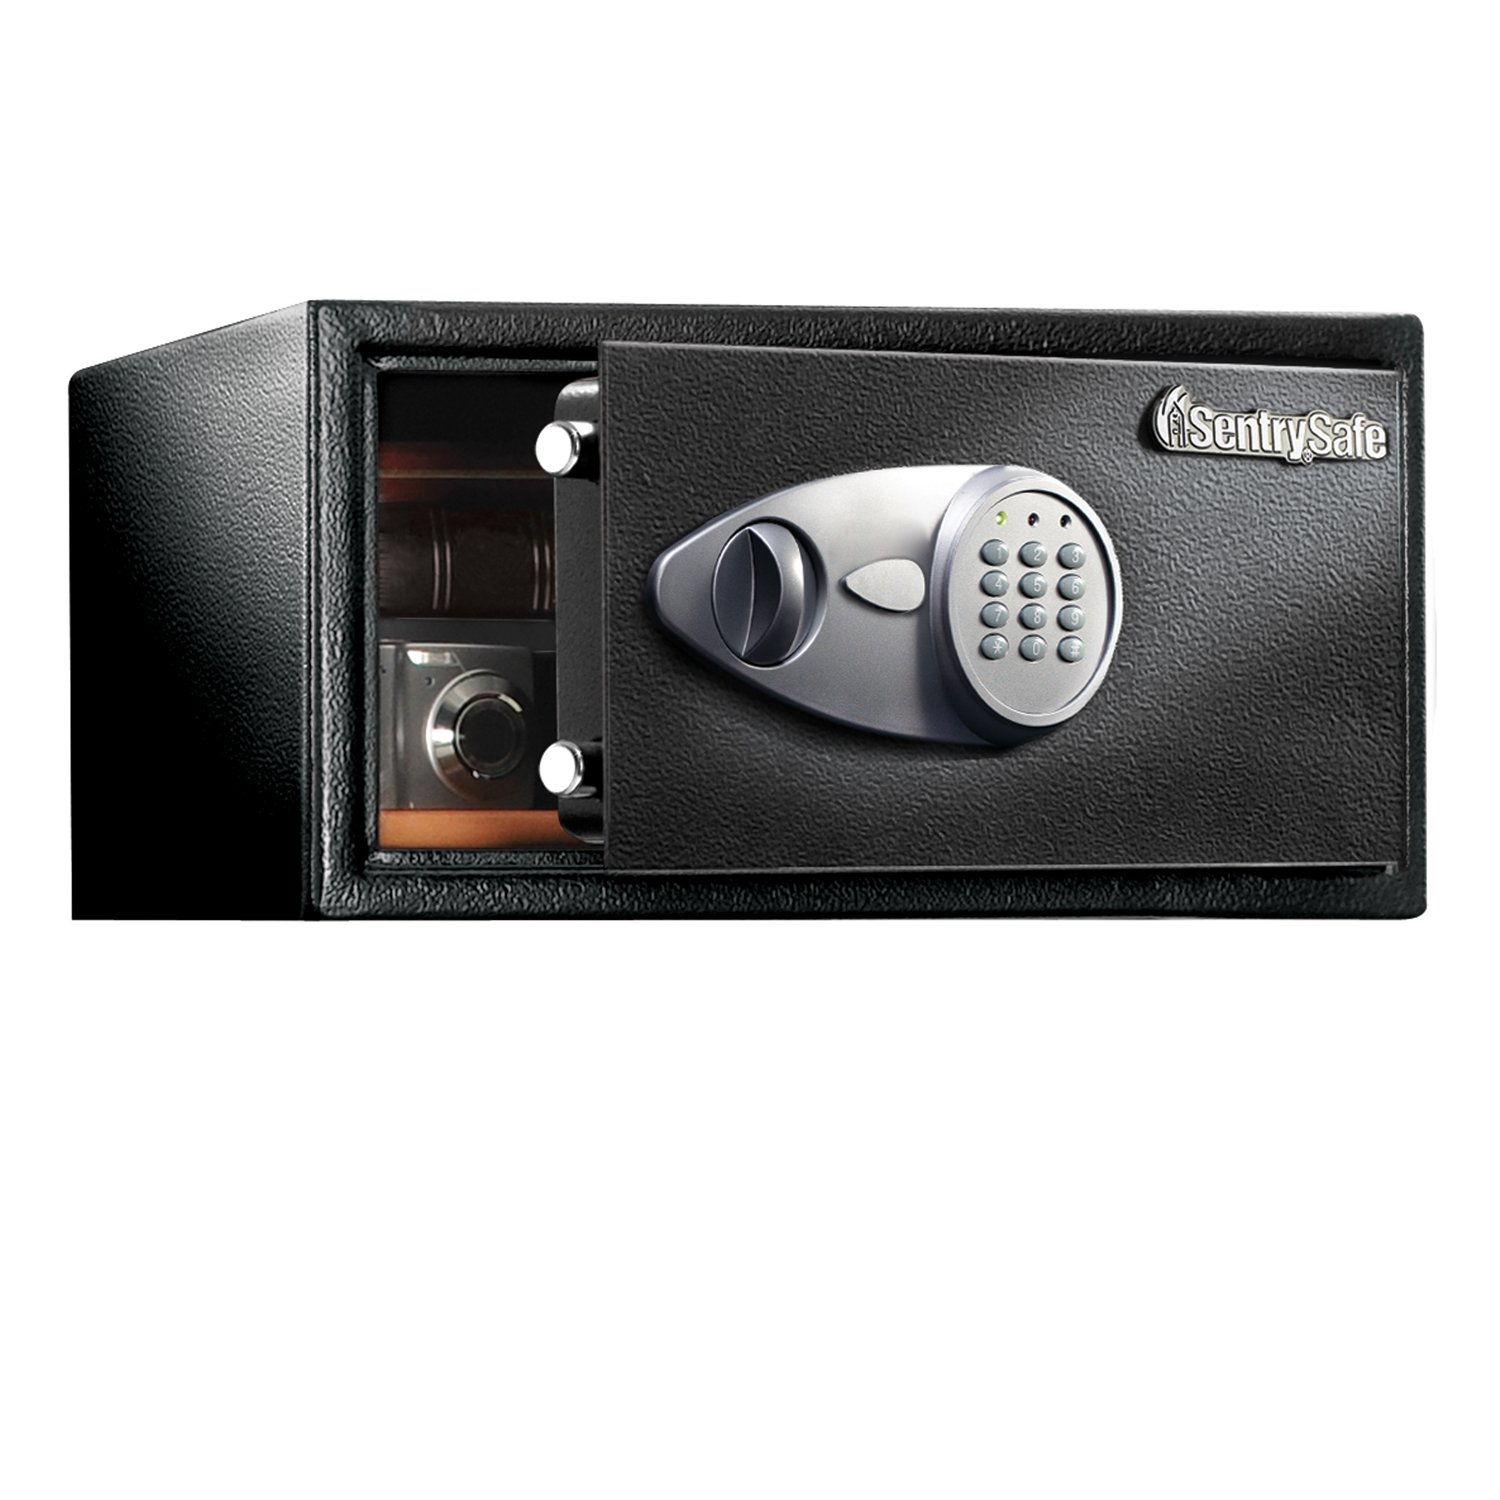 SentrySafe X105 Security Safe with with Digital Keypad, 0.9 Cubic Feet (Large) by SentrySafe